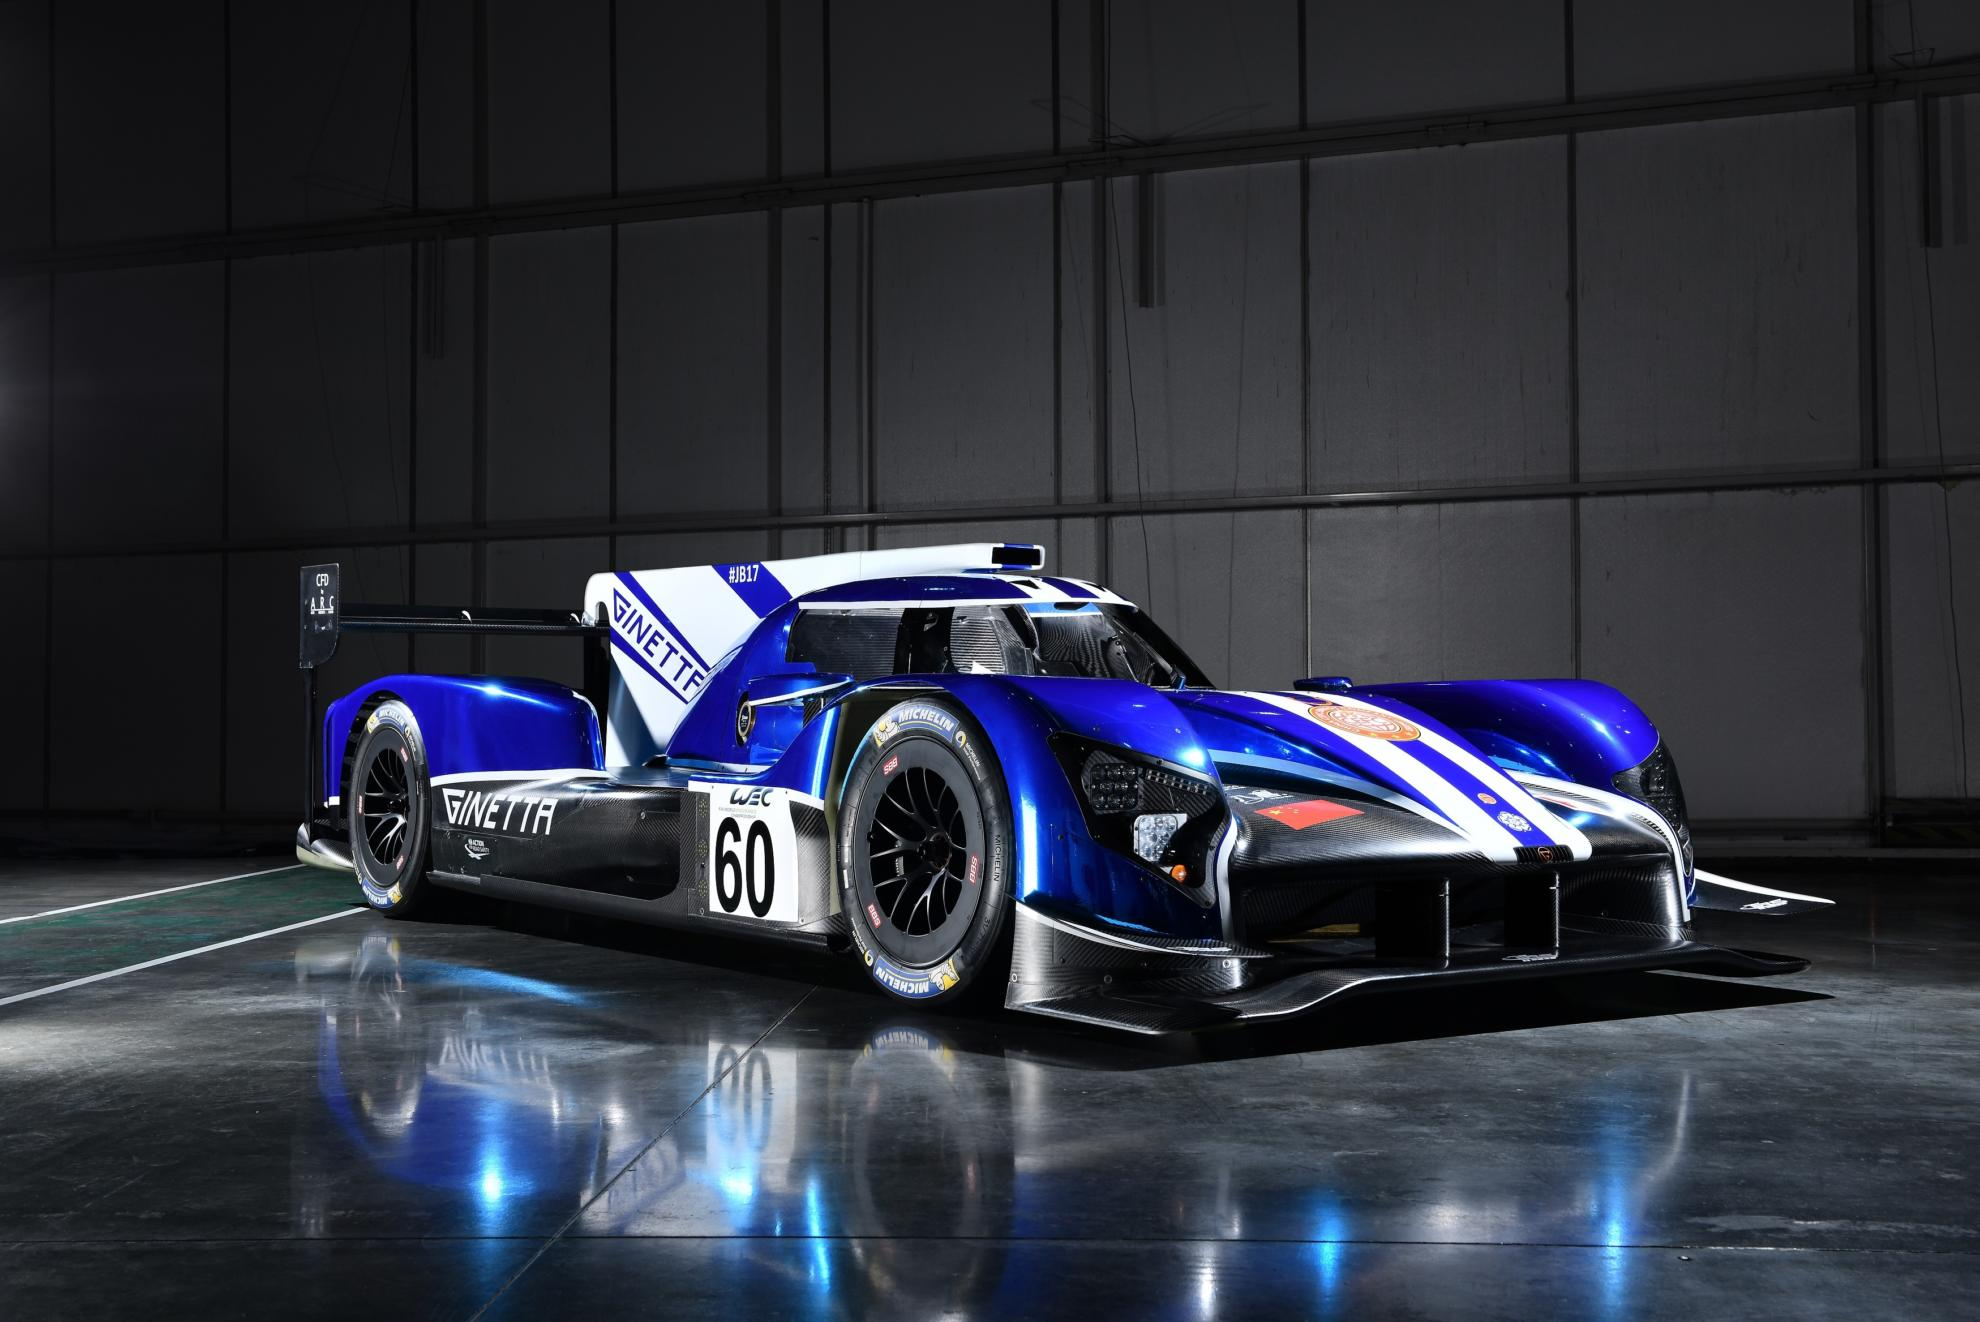 Two Ginetta G60-LT-P1's Set For FIA World Endurance Championship